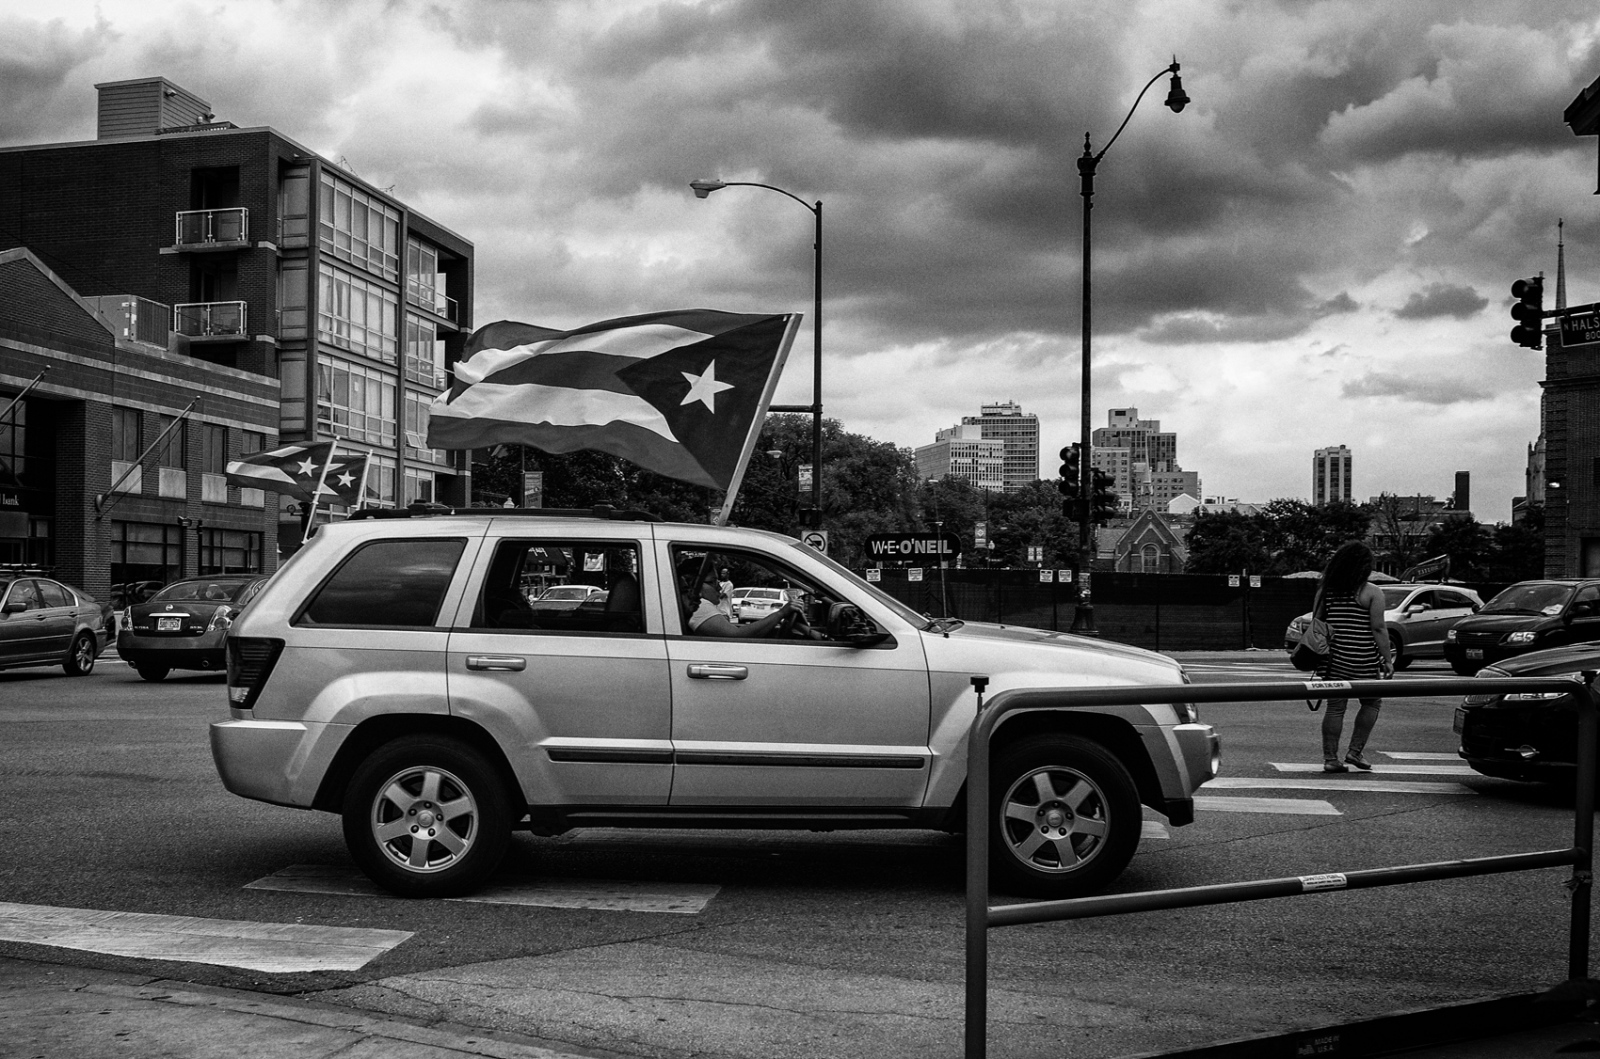 Car with Puerto Rican flags, Halsted and Fullerton, Chicago 2017